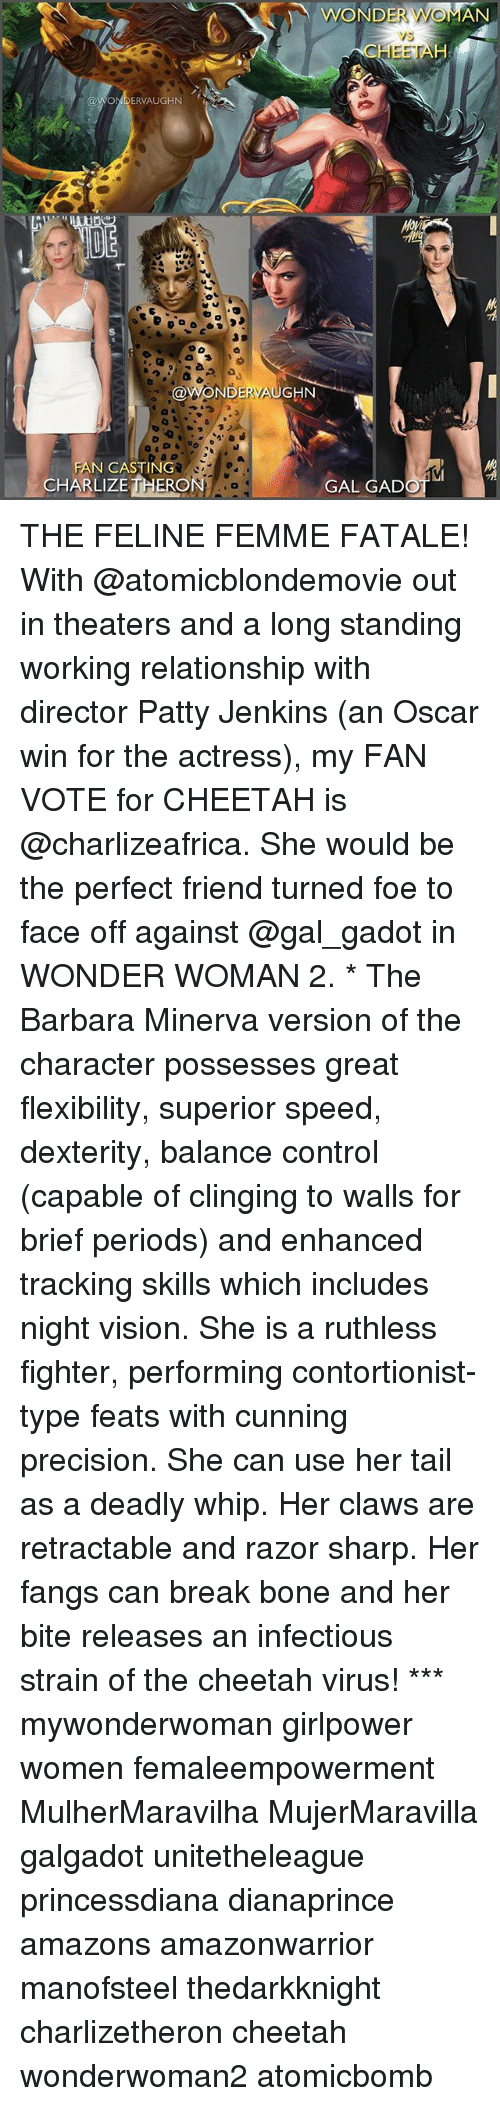 dexterity: WOND  AN  vs  CHEETA  ONDERVAUGHN  @WONDERVAUGHN  N CASTING  CHARLIZE THERO  GAL GAD THE FELINE FEMME FATALE! With @atomicblondemovie out in theaters and a long standing working relationship with director Patty Jenkins (an Oscar win for the actress), my FAN VOTE for CHEETAH is @charlizeafrica. She would be the perfect friend turned foe to face off against @gal_gadot in WONDER WOMAN 2. * The Barbara Minerva version of the character possesses great flexibility, superior speed, dexterity, balance control (capable of clinging to walls for brief periods) and enhanced tracking skills which includes night vision. She is a ruthless fighter, performing contortionist-type feats with cunning precision. She can use her tail as a deadly whip. Her claws are retractable and razor sharp. Her fangs can break bone and her bite releases an infectious strain of the cheetah virus! *** mywonderwoman girlpower women femaleempowerment MulherMaravilha MujerMaravilla galgadot unitetheleague princessdiana dianaprince amazons amazonwarrior manofsteel thedarkknight charlizetheron cheetah wonderwoman2 atomicbomb